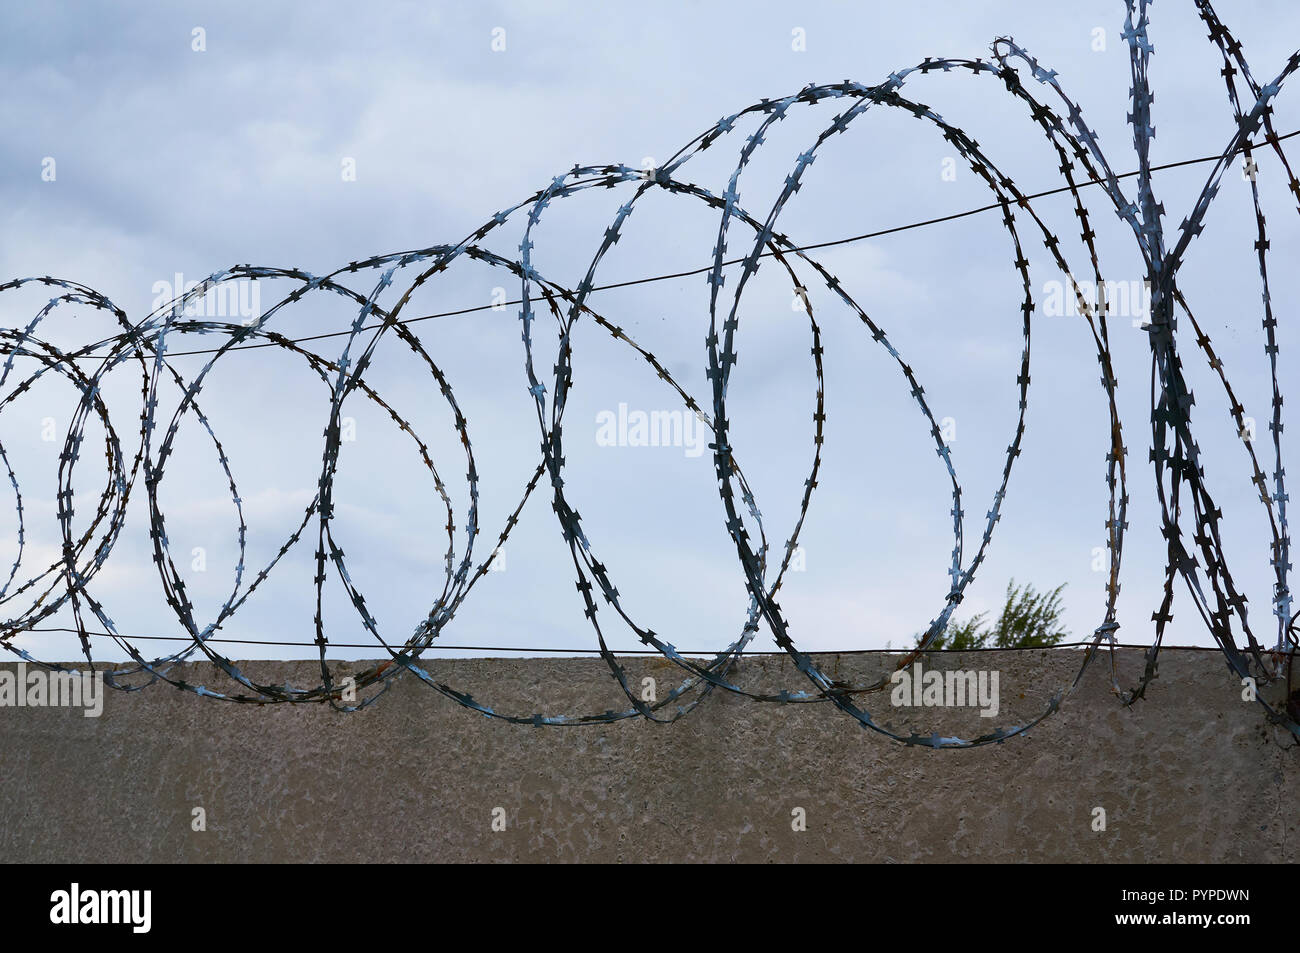 Barbed wire on the background of a concrete fence and cloudy sky. - Stock Image